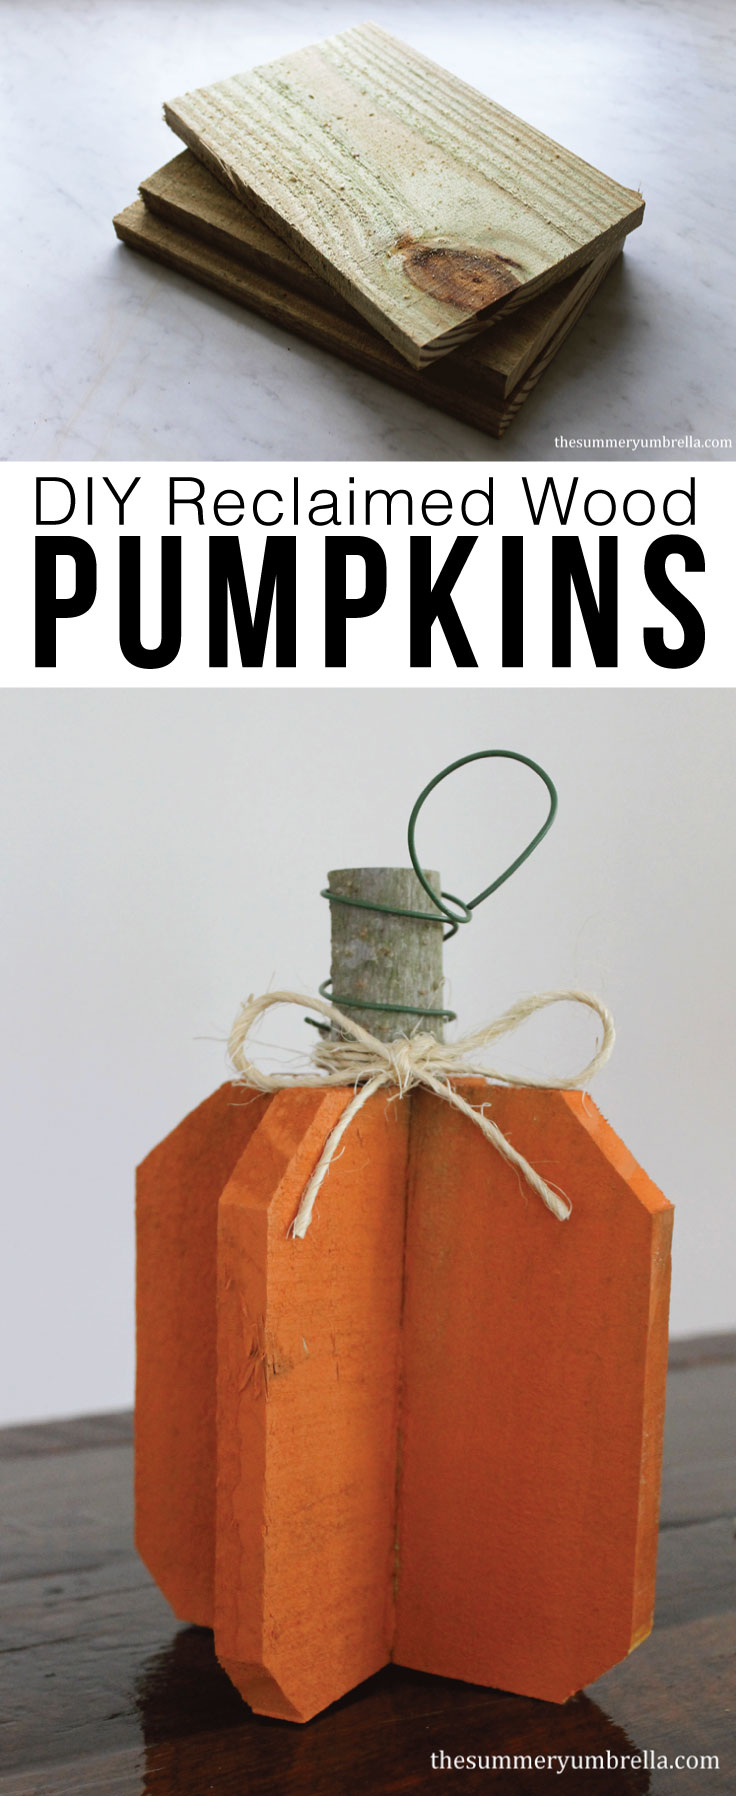 Create your own DIY reclaimed wood pumpkins with just a few simple materials. Let me show you how now!